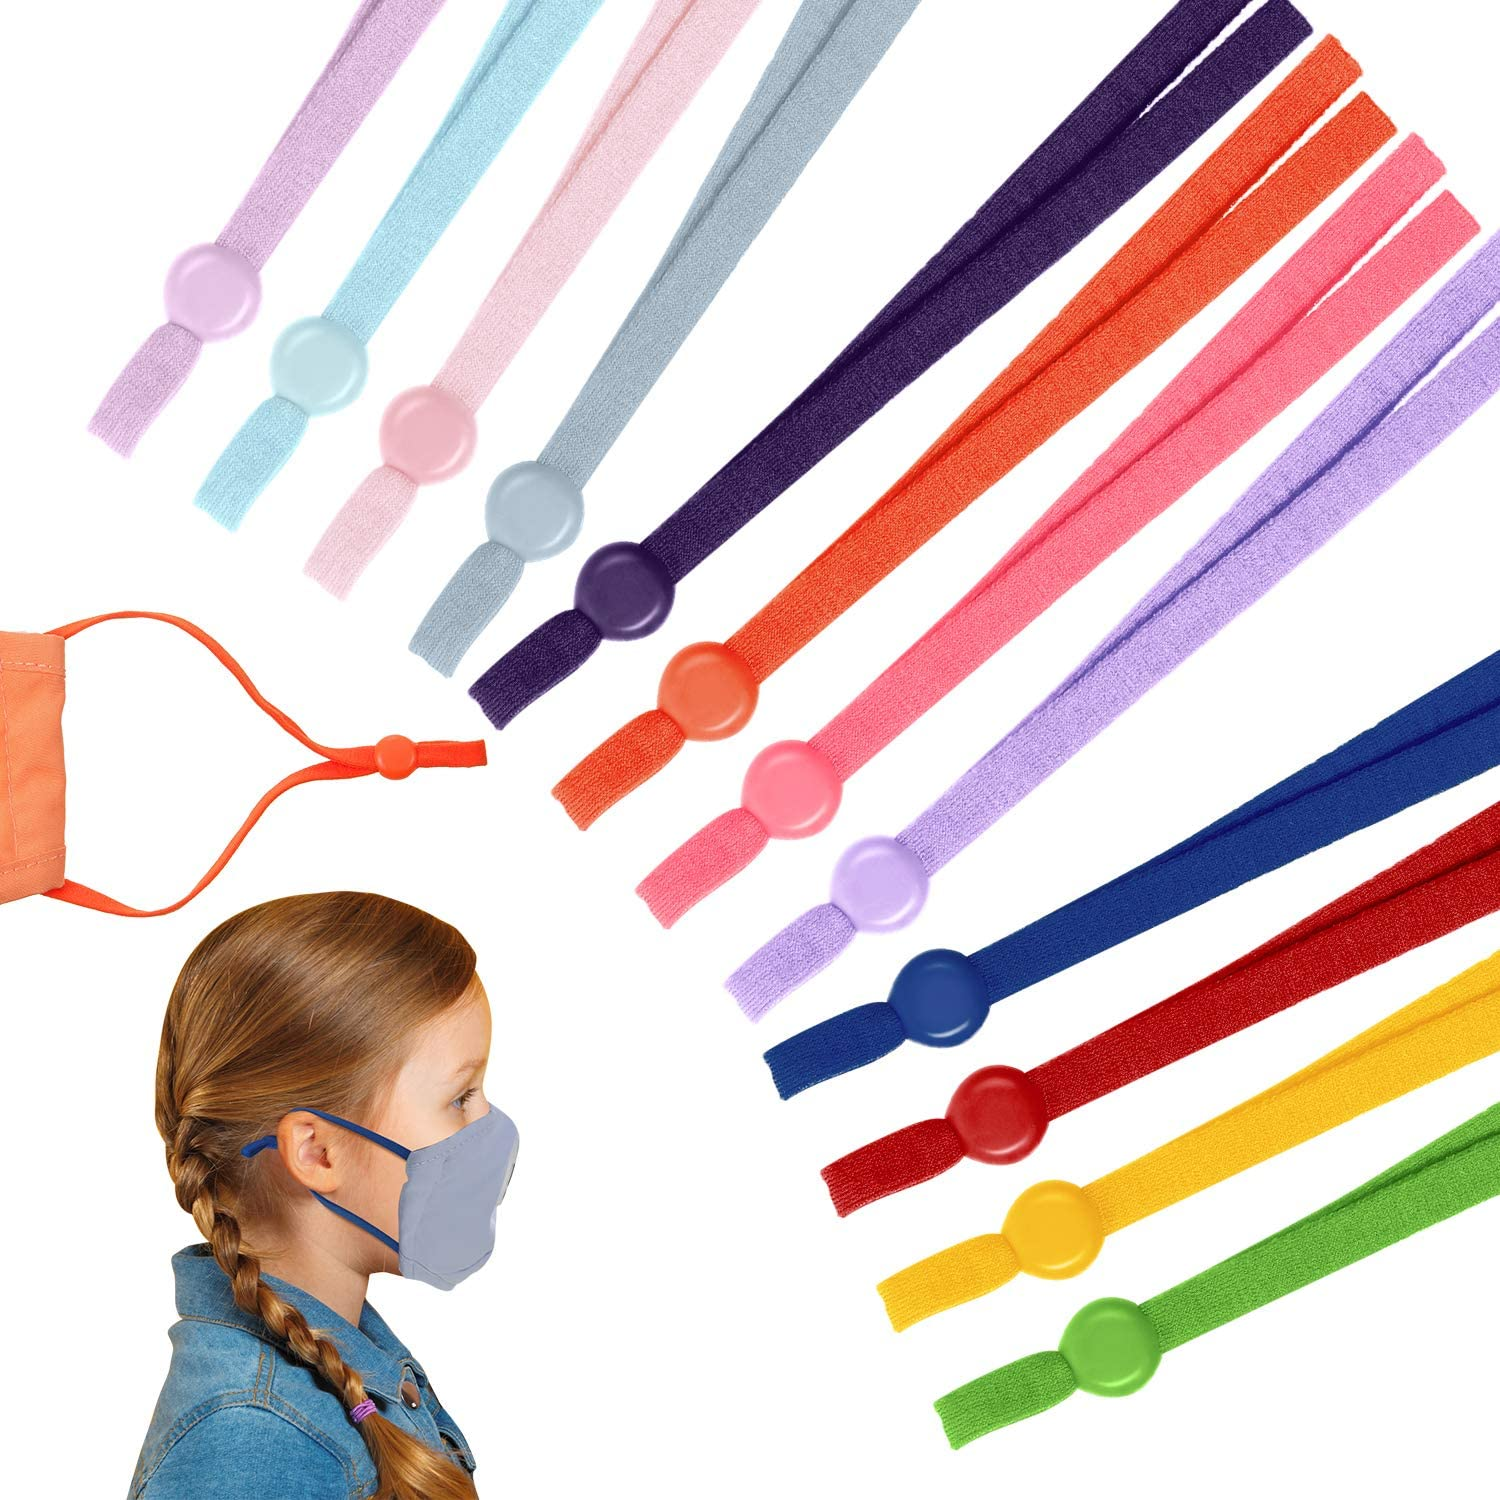 120 Pieces Sewing Elastic Cord Bands Colorful Stretchy Ear Band Straps Adjustable String Bands with Adjustable Buckles Anti-Slip Cord Locks for DIY Sewing Crafts (Dark Colors)